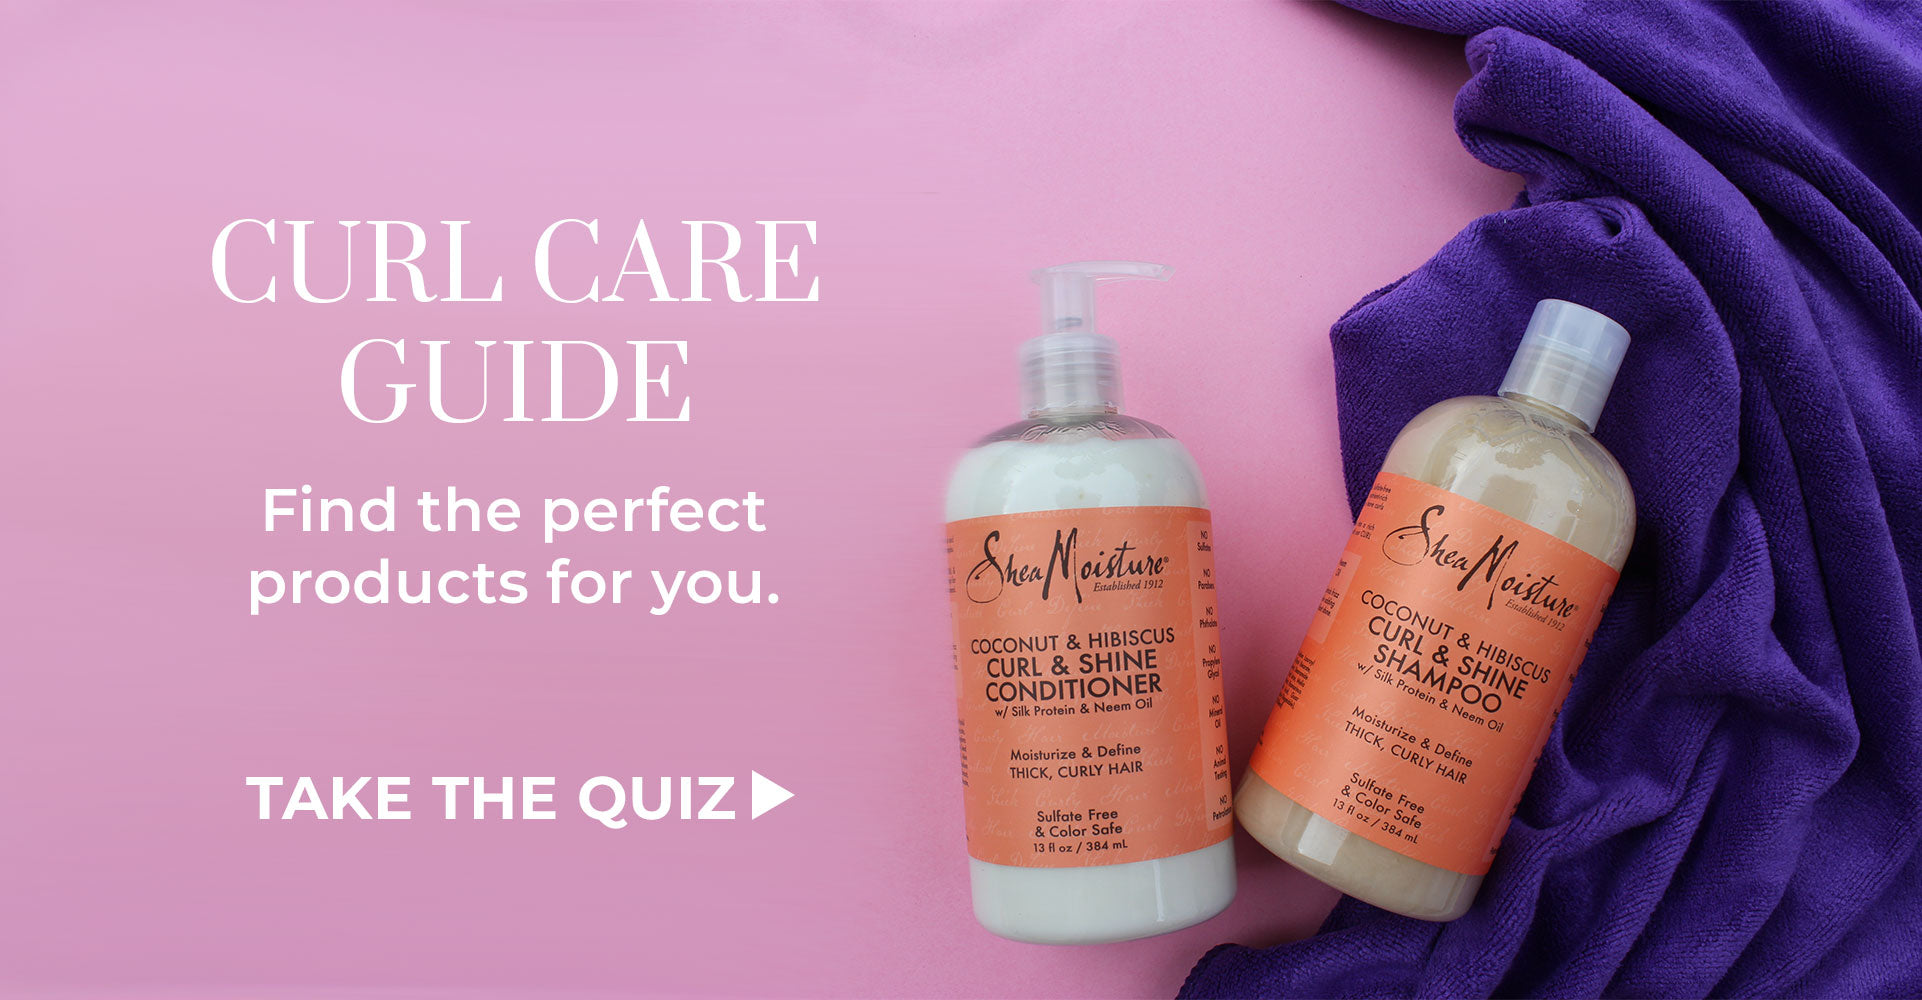 Use the curl care guide to find the perfect products for you